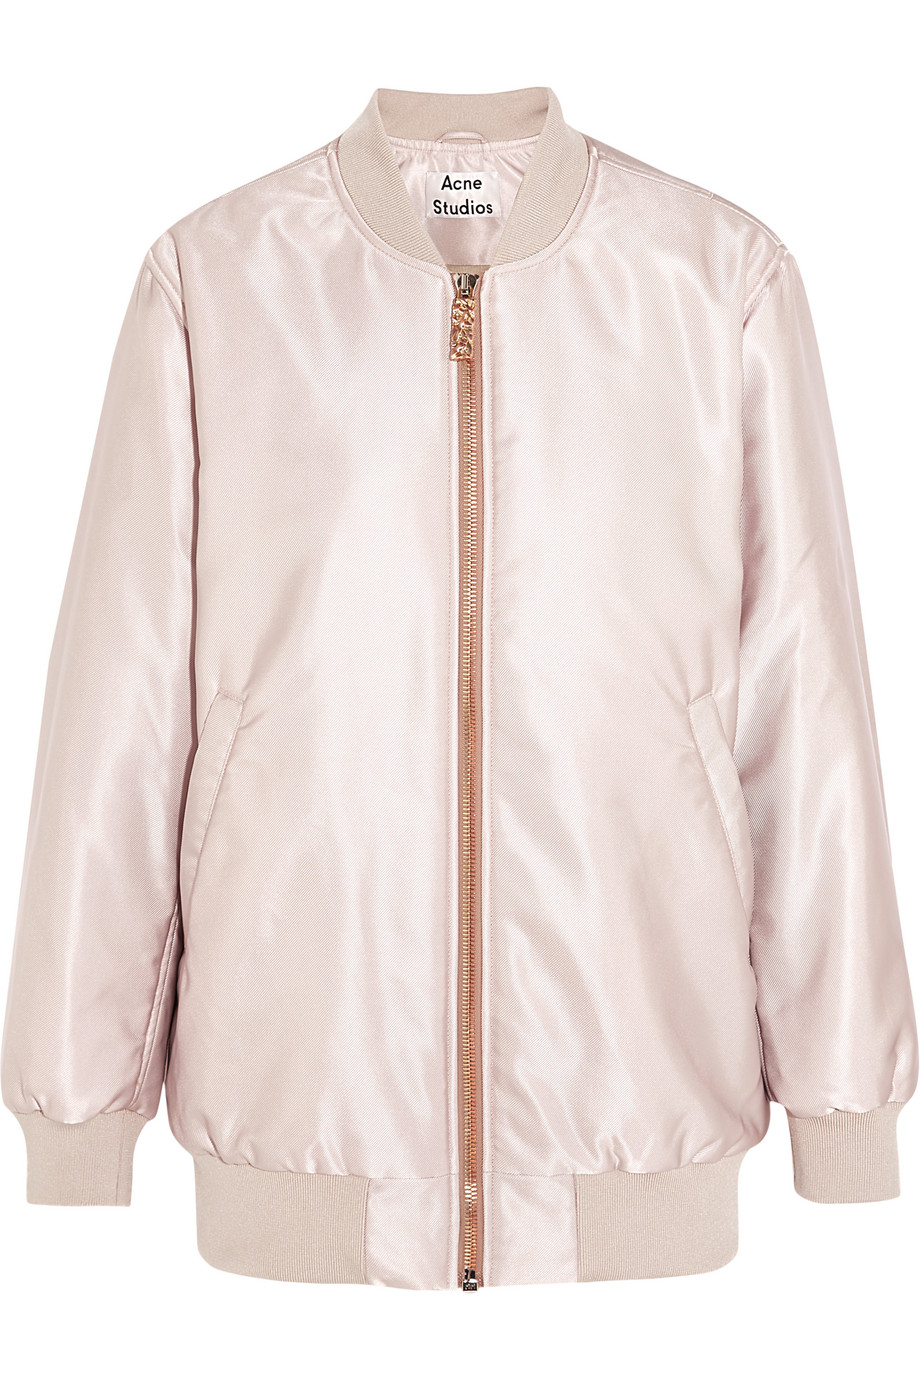 Acne Studios Selow Satin-Faille Bomber Jacket, Pink, Women's, Size: 40